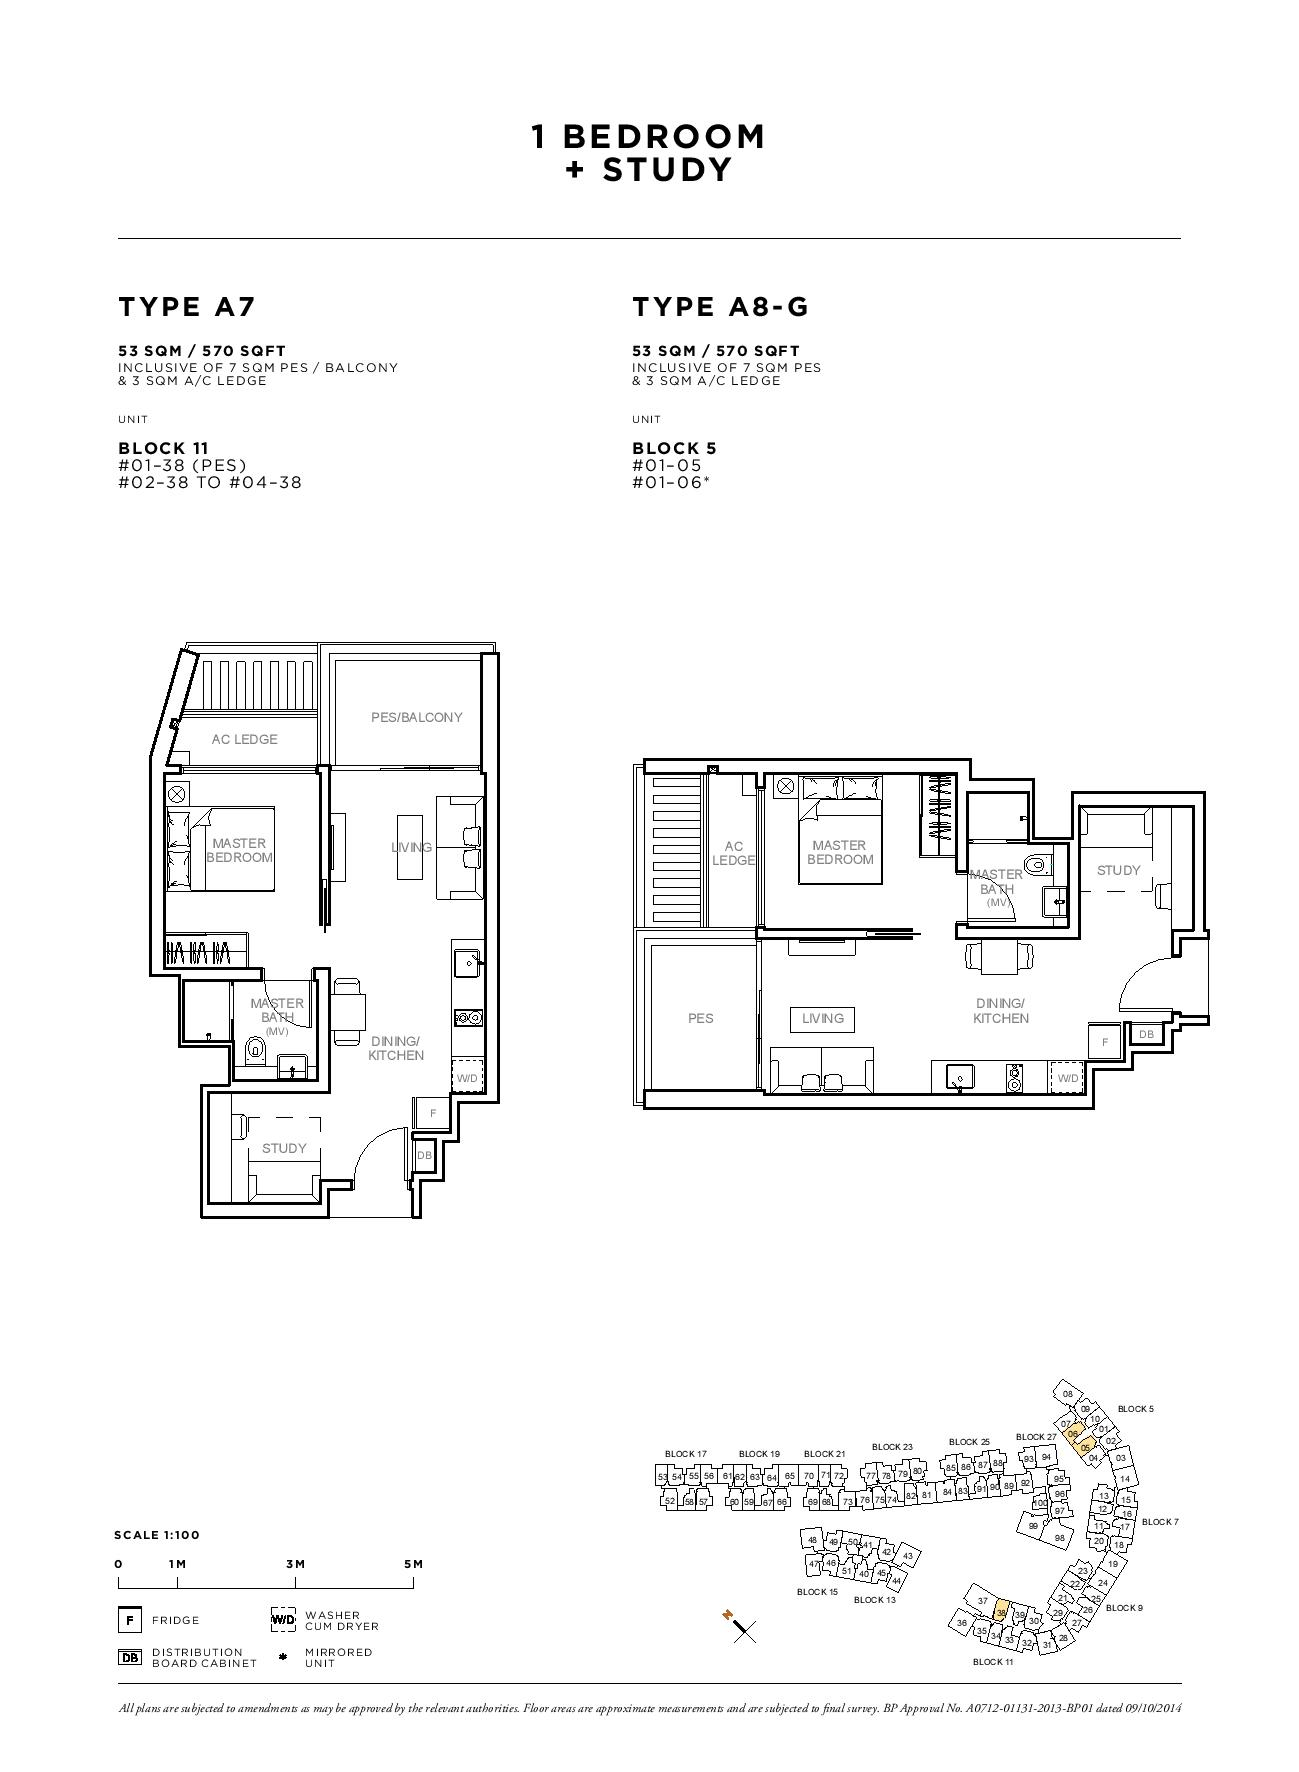 Sophia Hills 1 Bedroom + Study Type A7, A8-G Floor Plans